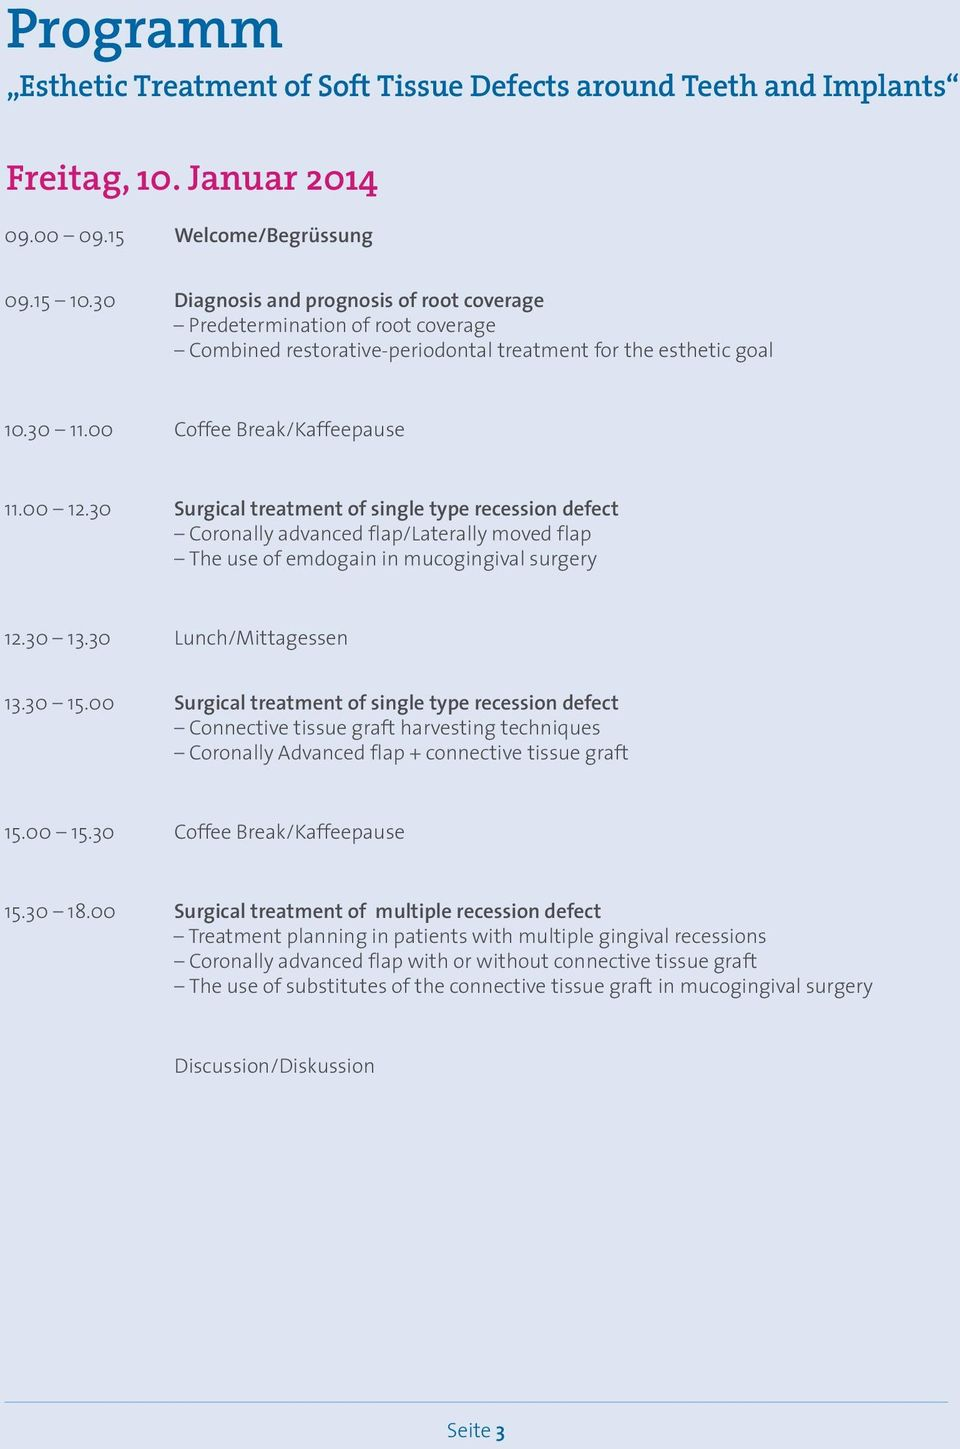 30 Surgical treatment of single type recession defect Coronally advanced flap/laterally moved flap The use of emdogain in mucogingival surgery 12.30 13.30 Lunch/Mittagessen 13.30 15.